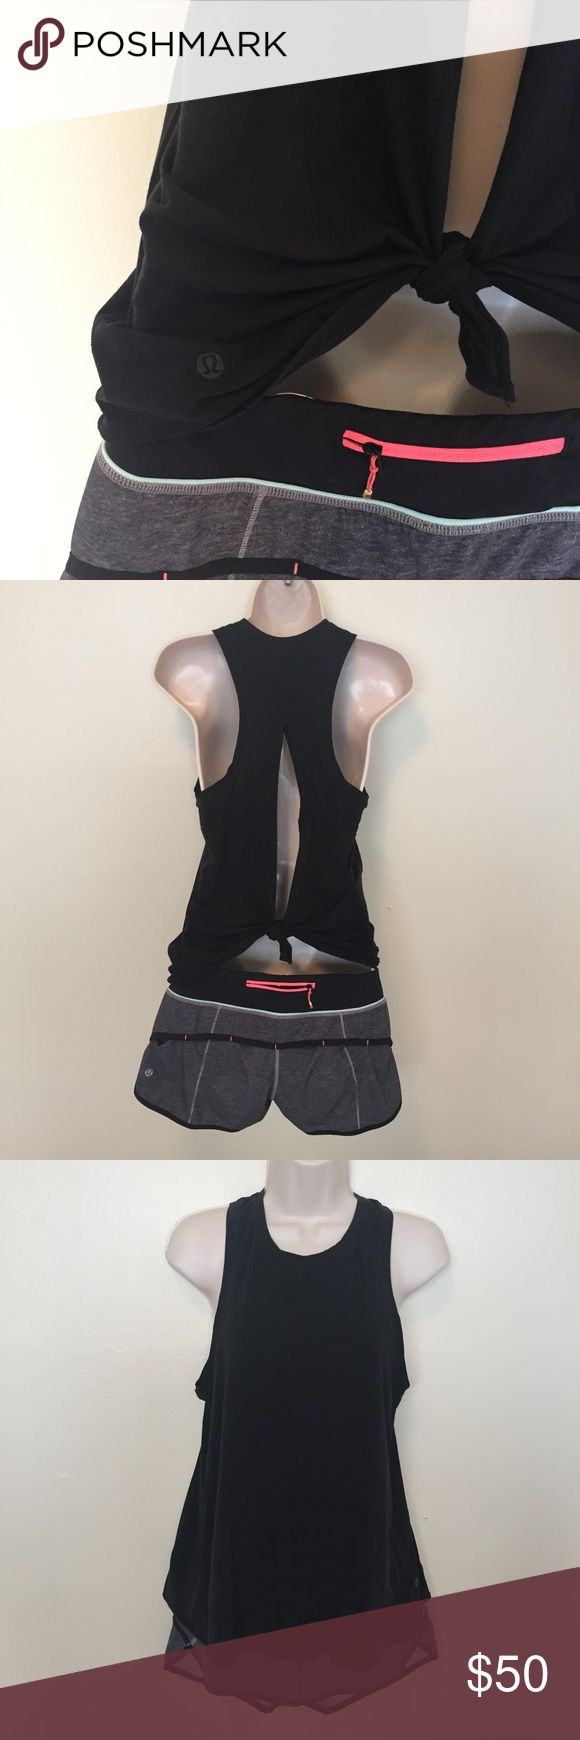 lululemon all tied up tank. black. 4. lululemon all tied up tank black. 4. never worked out in. slight fade (as is normal with black). OUT OF STOCK ONLINE. NO TRADES. lululemon athletica Tops Tank Tops